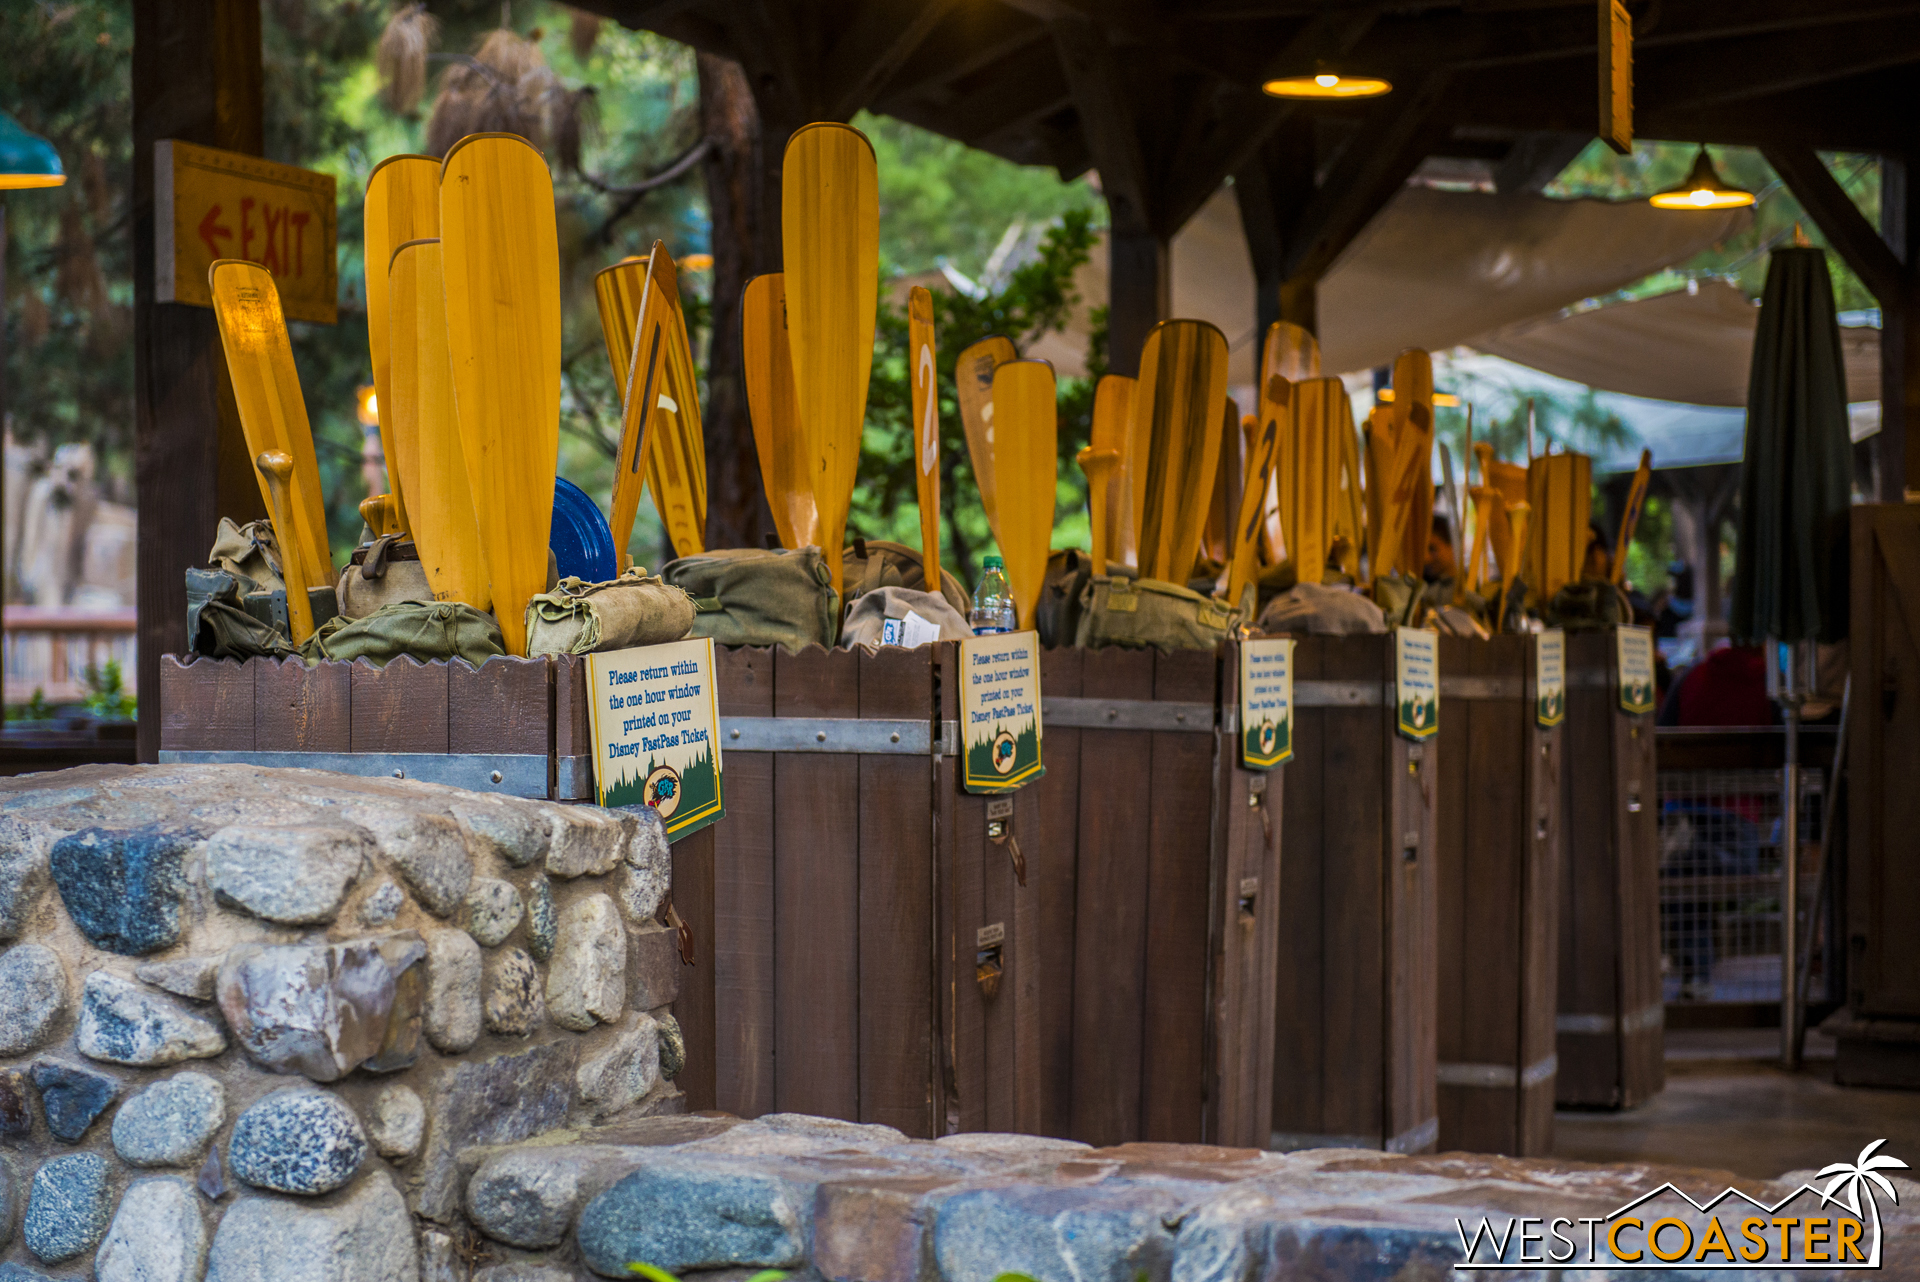 At some FastPasses, reminders have been added to return within the hour of the FastPass return time window. No longer are guests being allowed to use their FastPasses after the time has expired. This closes a loophole that guests used to exploit en masse and puts the policy in line with the international parks.